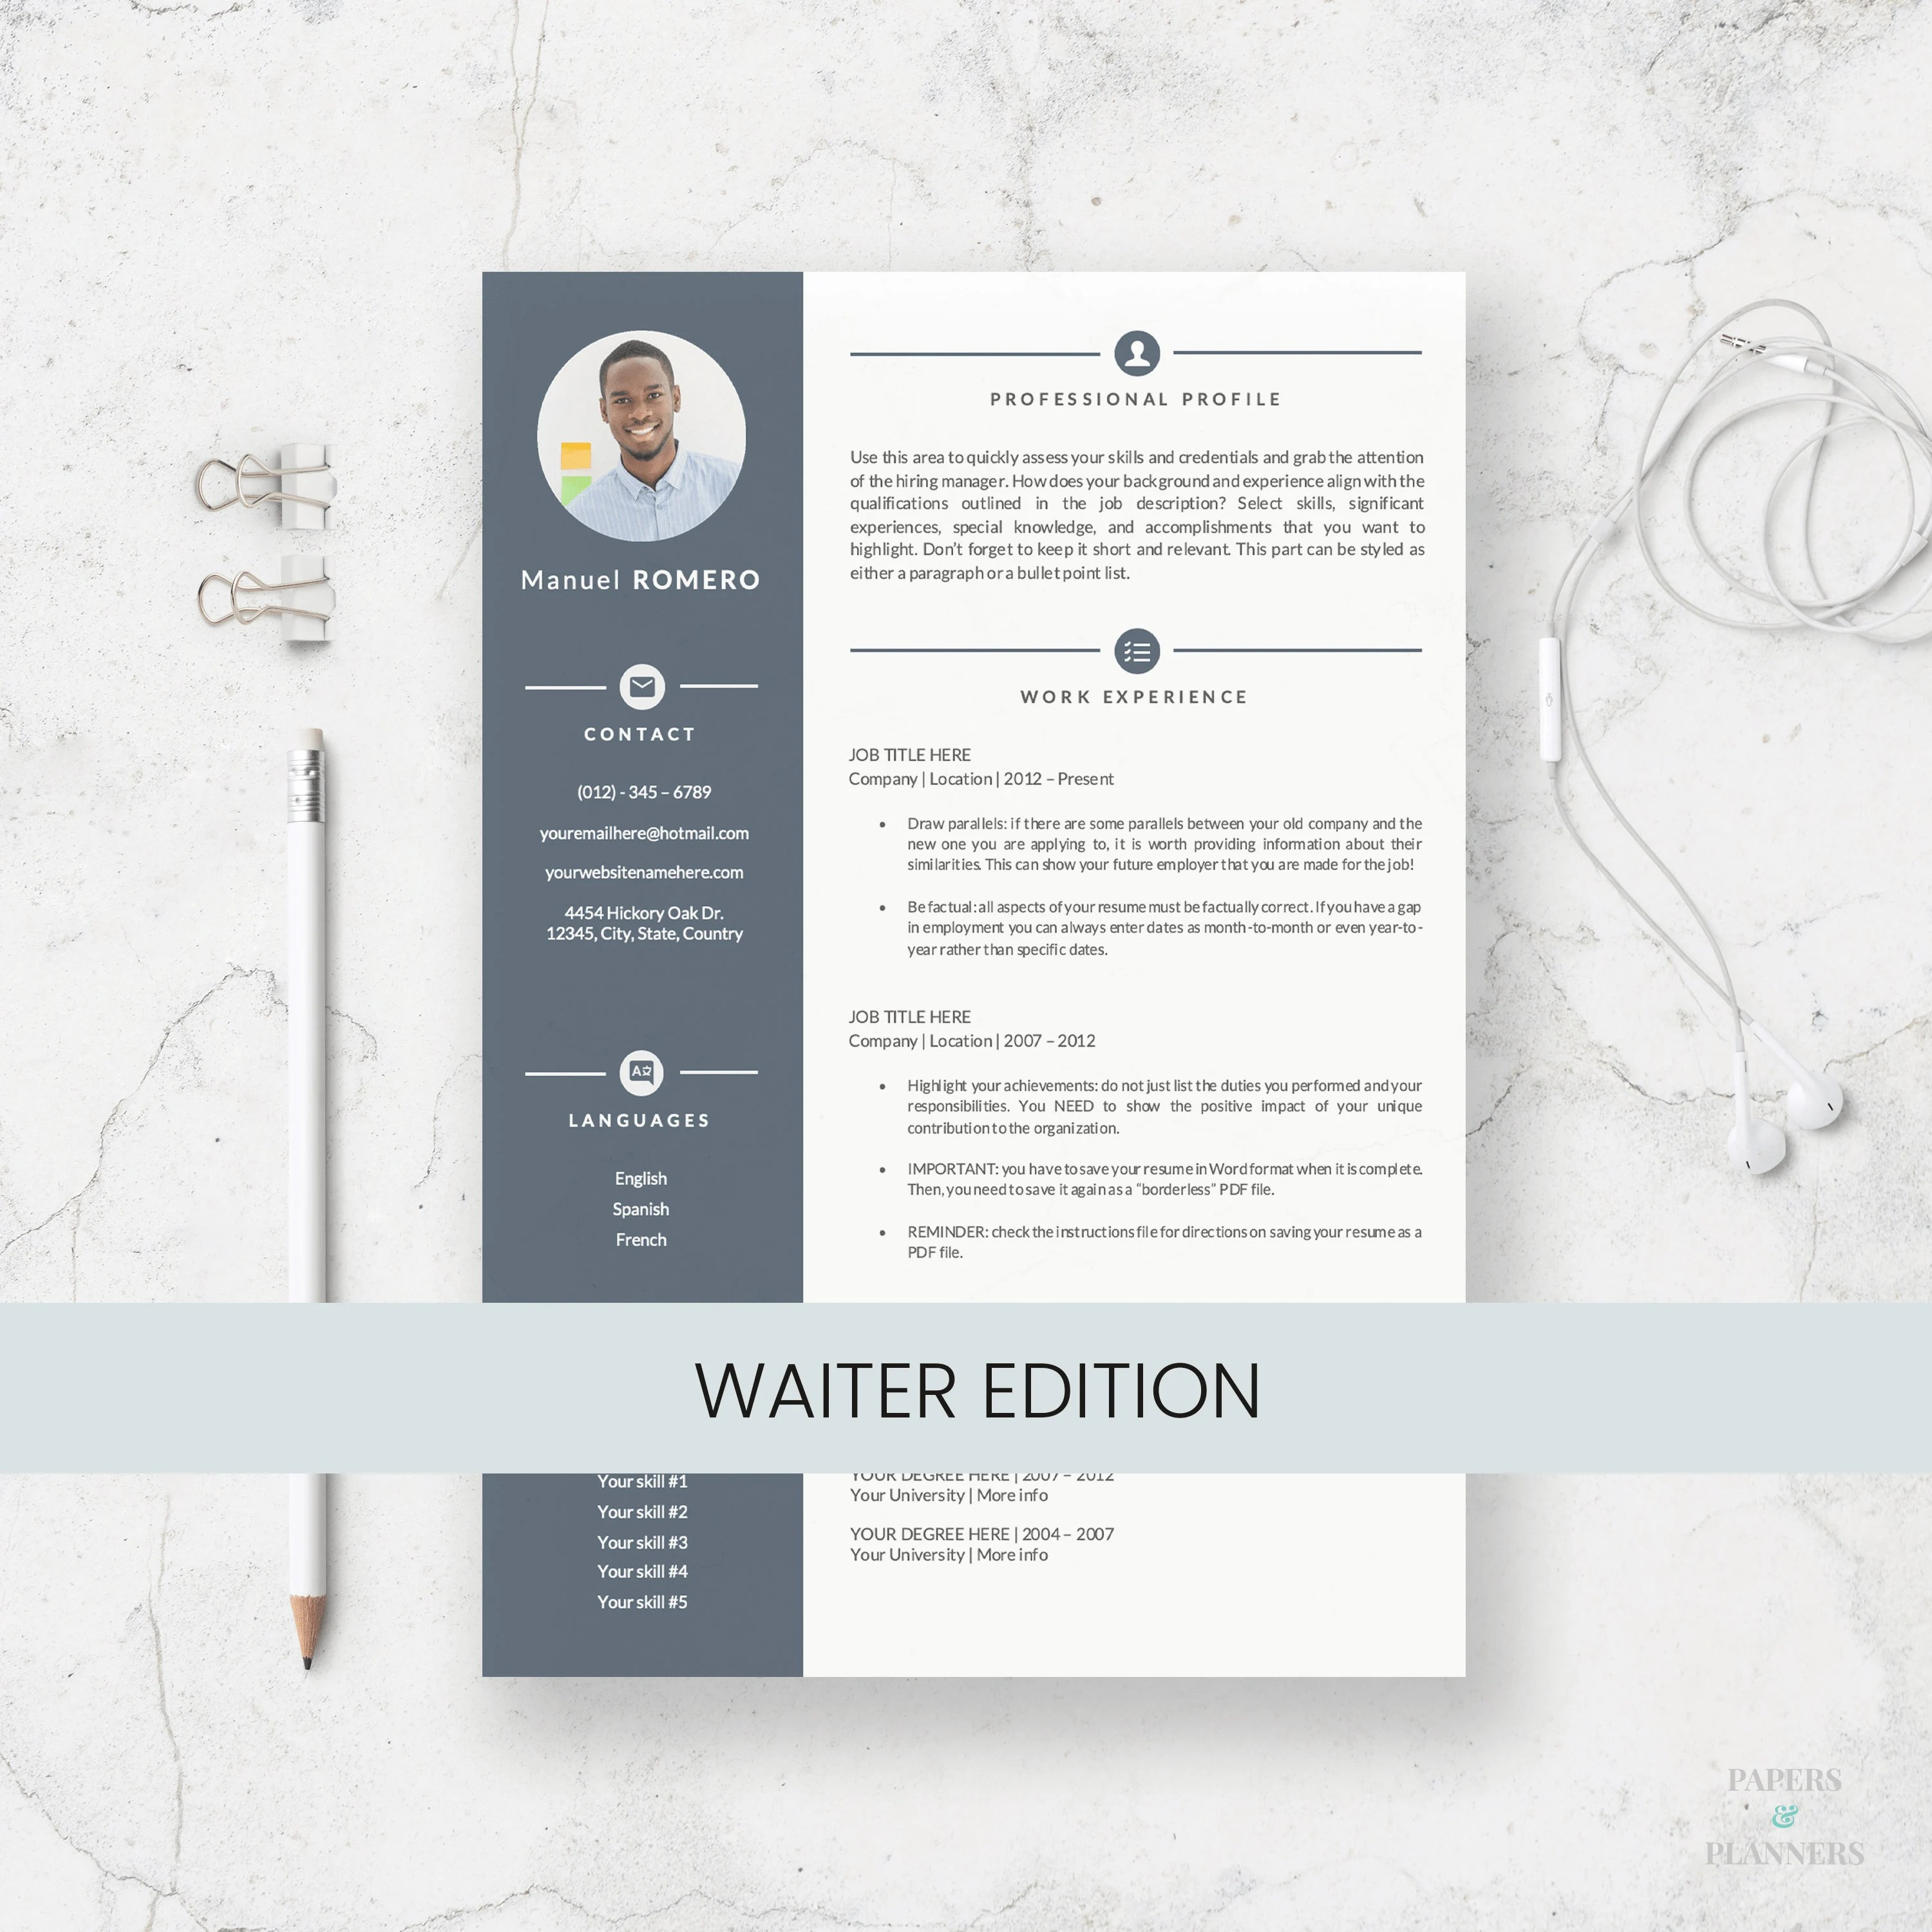 Waiter Resume Template for Microsoft Word Curriculum Vitae Etsy